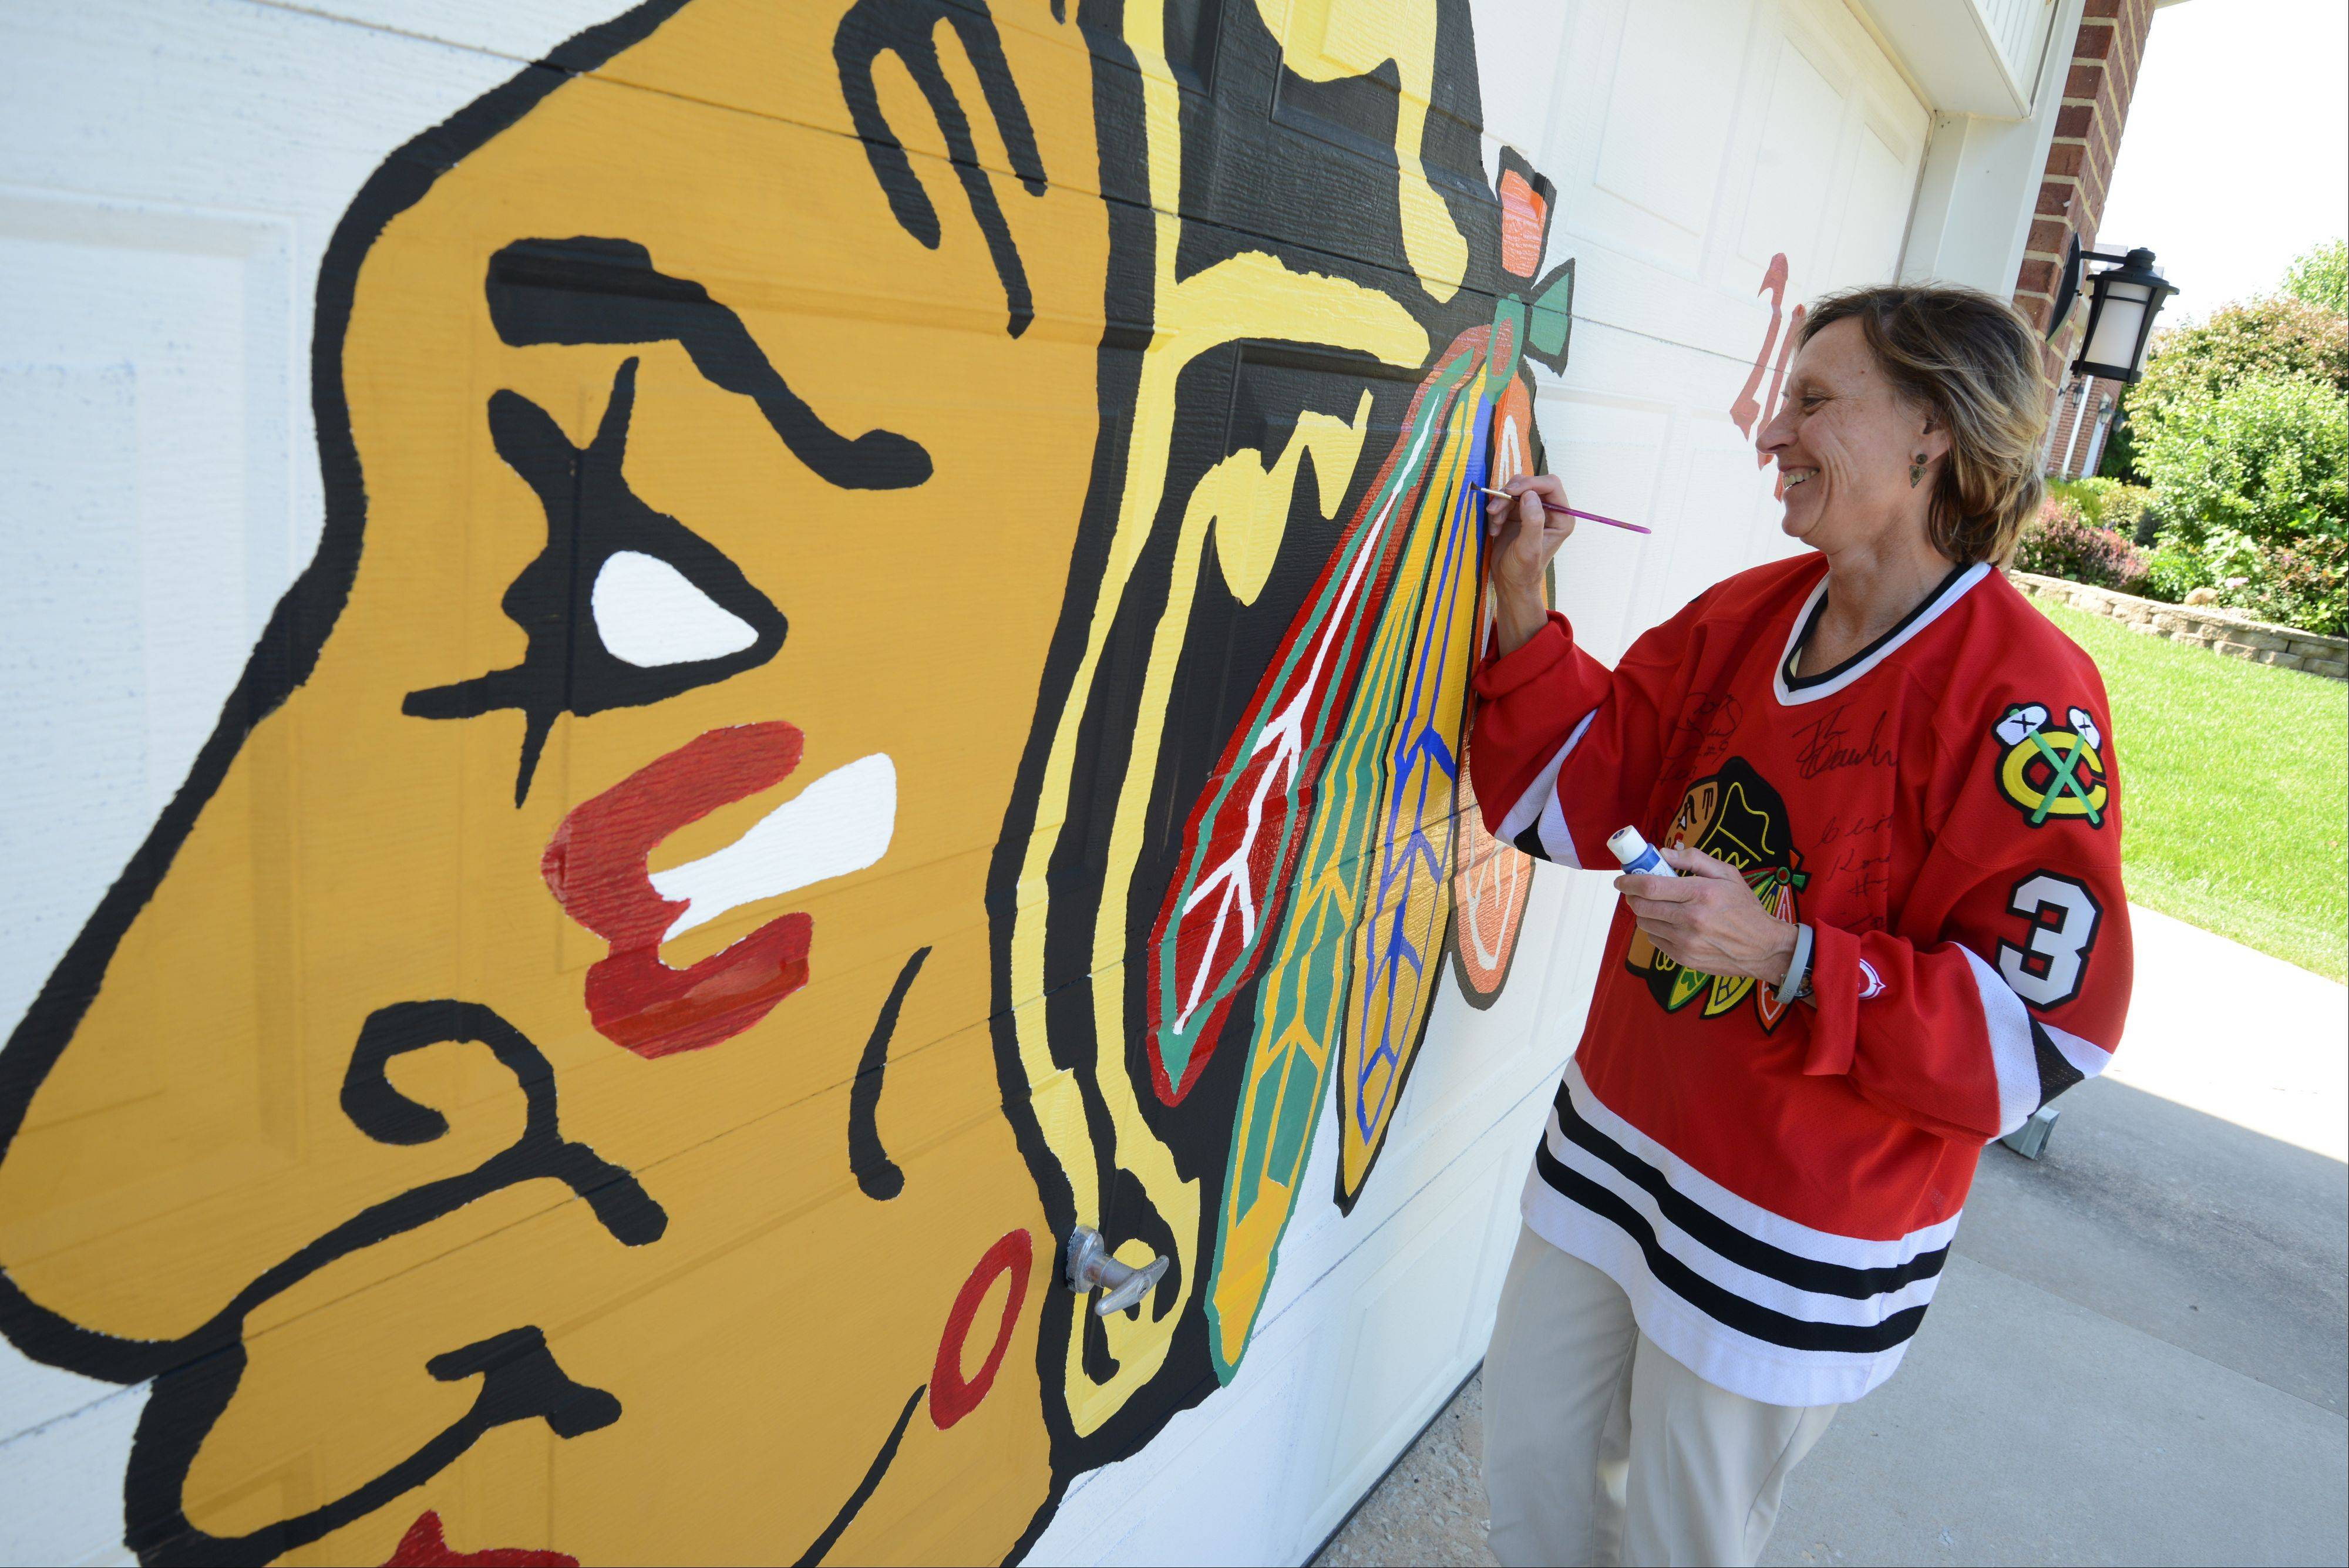 Hawks Lee Ann Stawczyk of Woodridge touches up her hand-painted Hawks logo, one of several ways she's demonstrated her fanaticism about the Hawks.